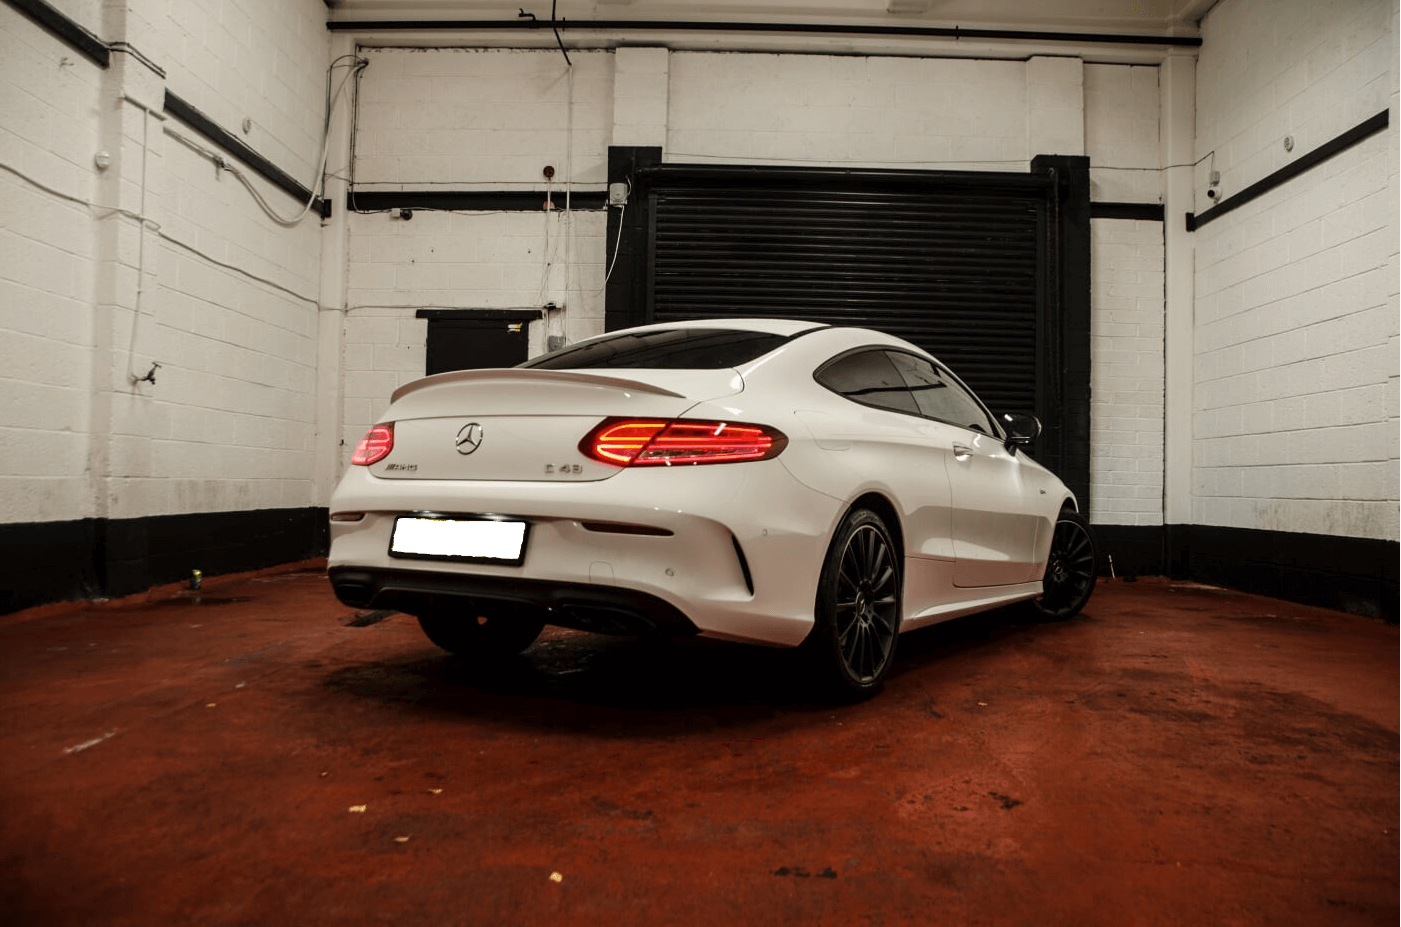 Mercedes-Benz C43 AMG Hire